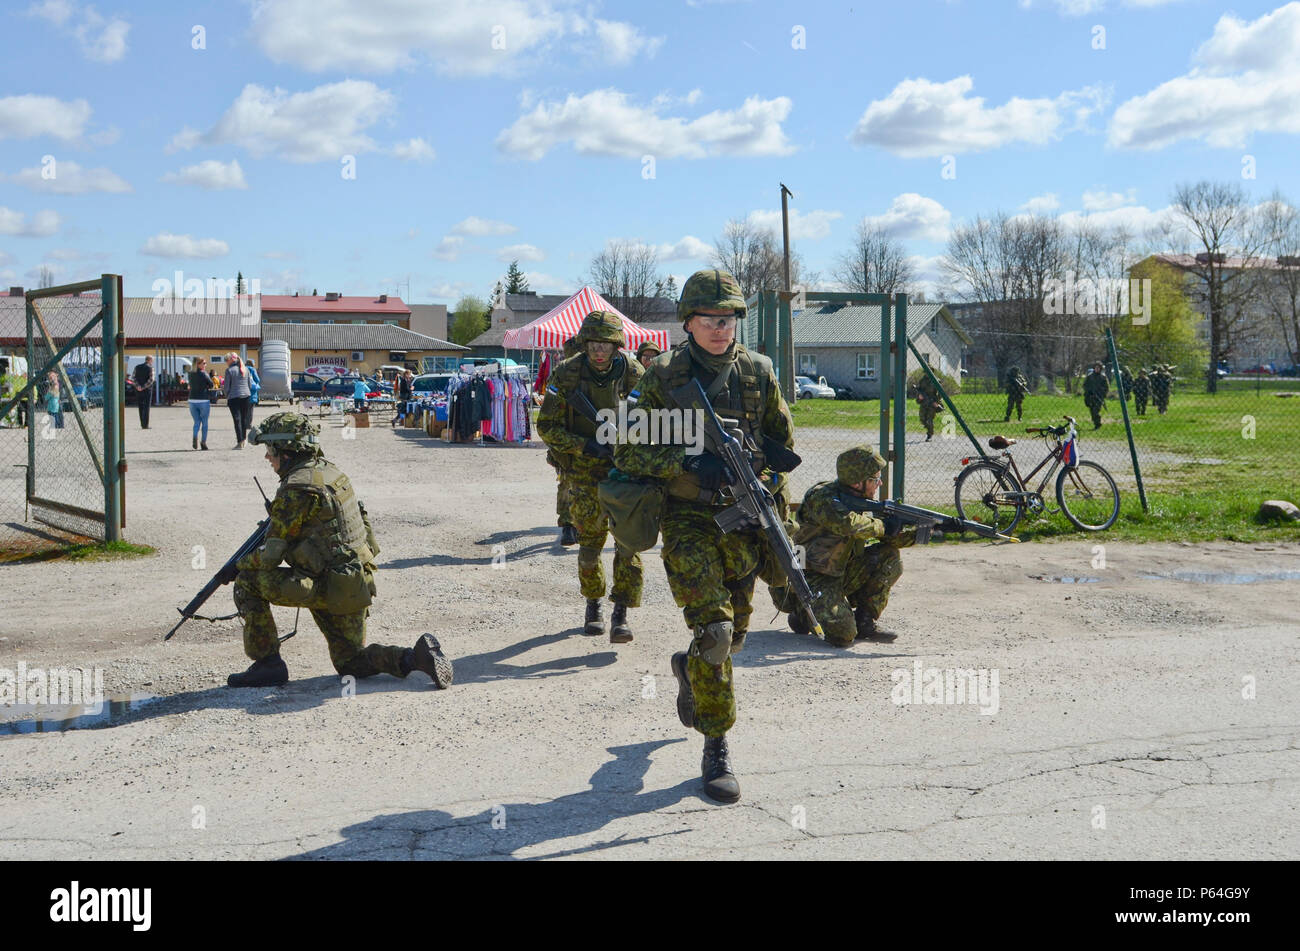 Estonian Soldiers of 2nd Infantry Brigade, Kuperjanov Battalion, move through an open market in the center of town during an urban operations exercise, Voru, Estonia, April 30,2016. (Photo by U.S. Army Staff Sgt. Steven M. Colvin/Released) - Stock Image